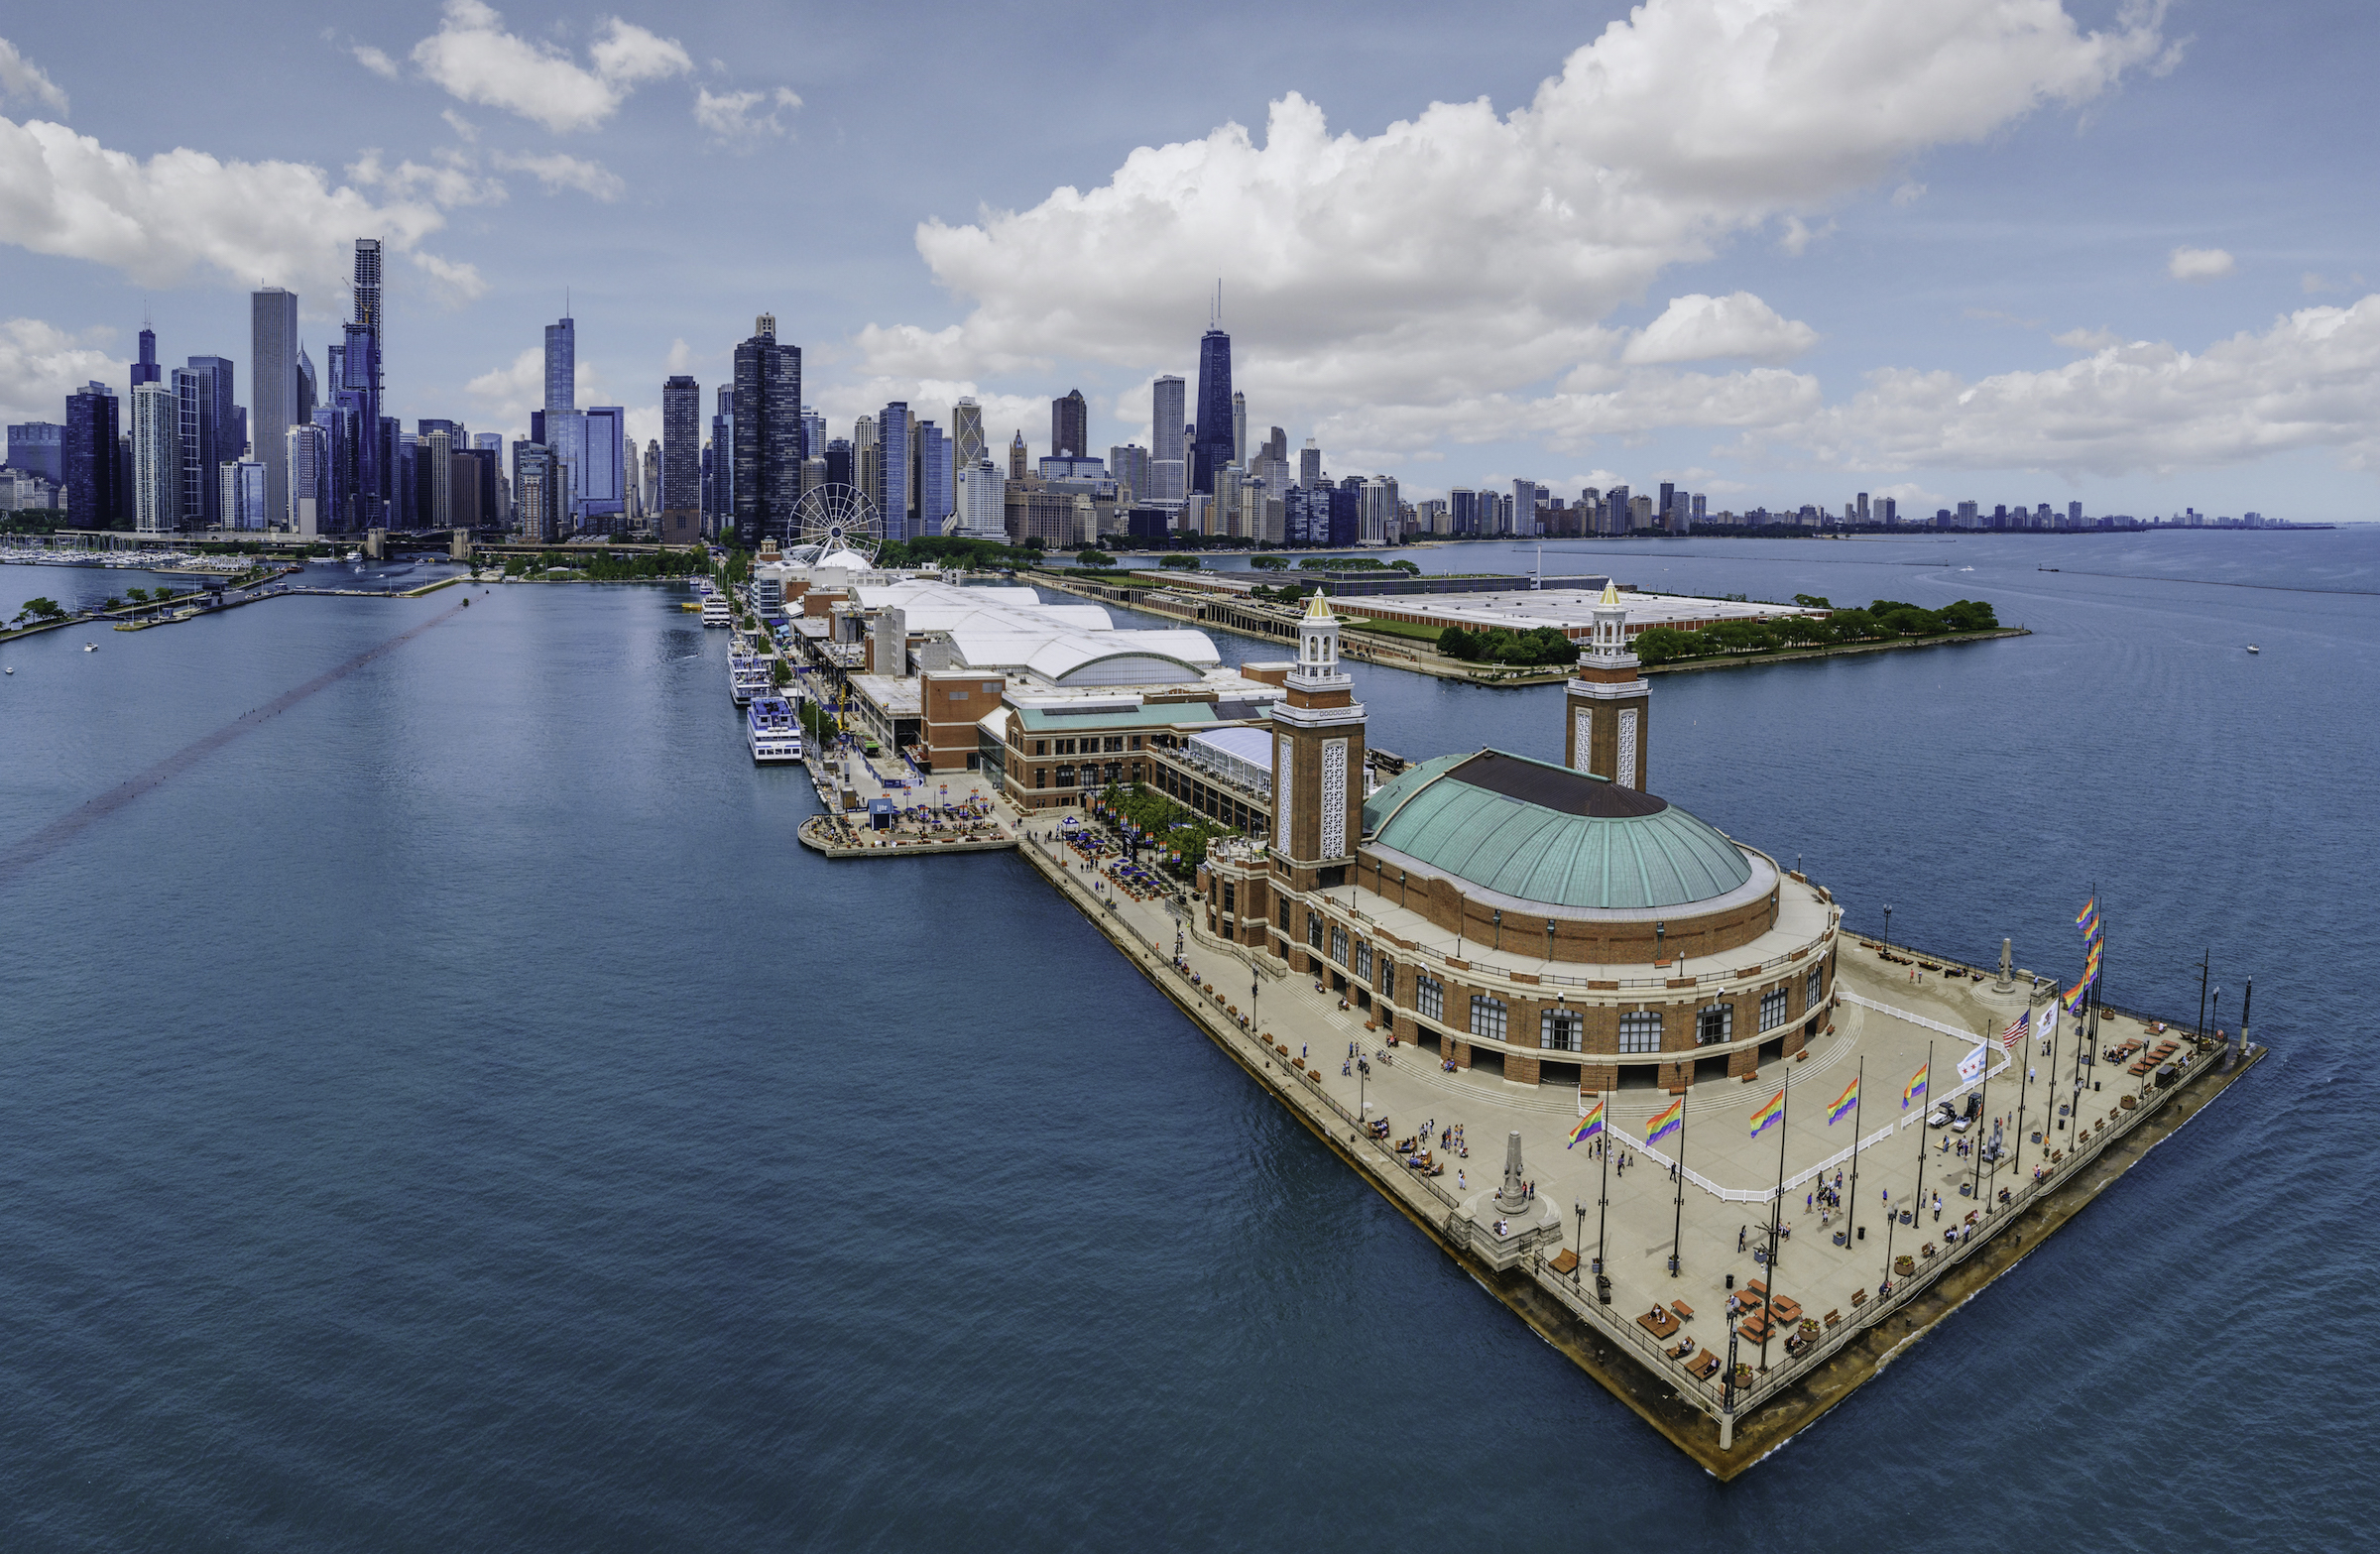 The Navy Pier IMAX Theater has closed permanently